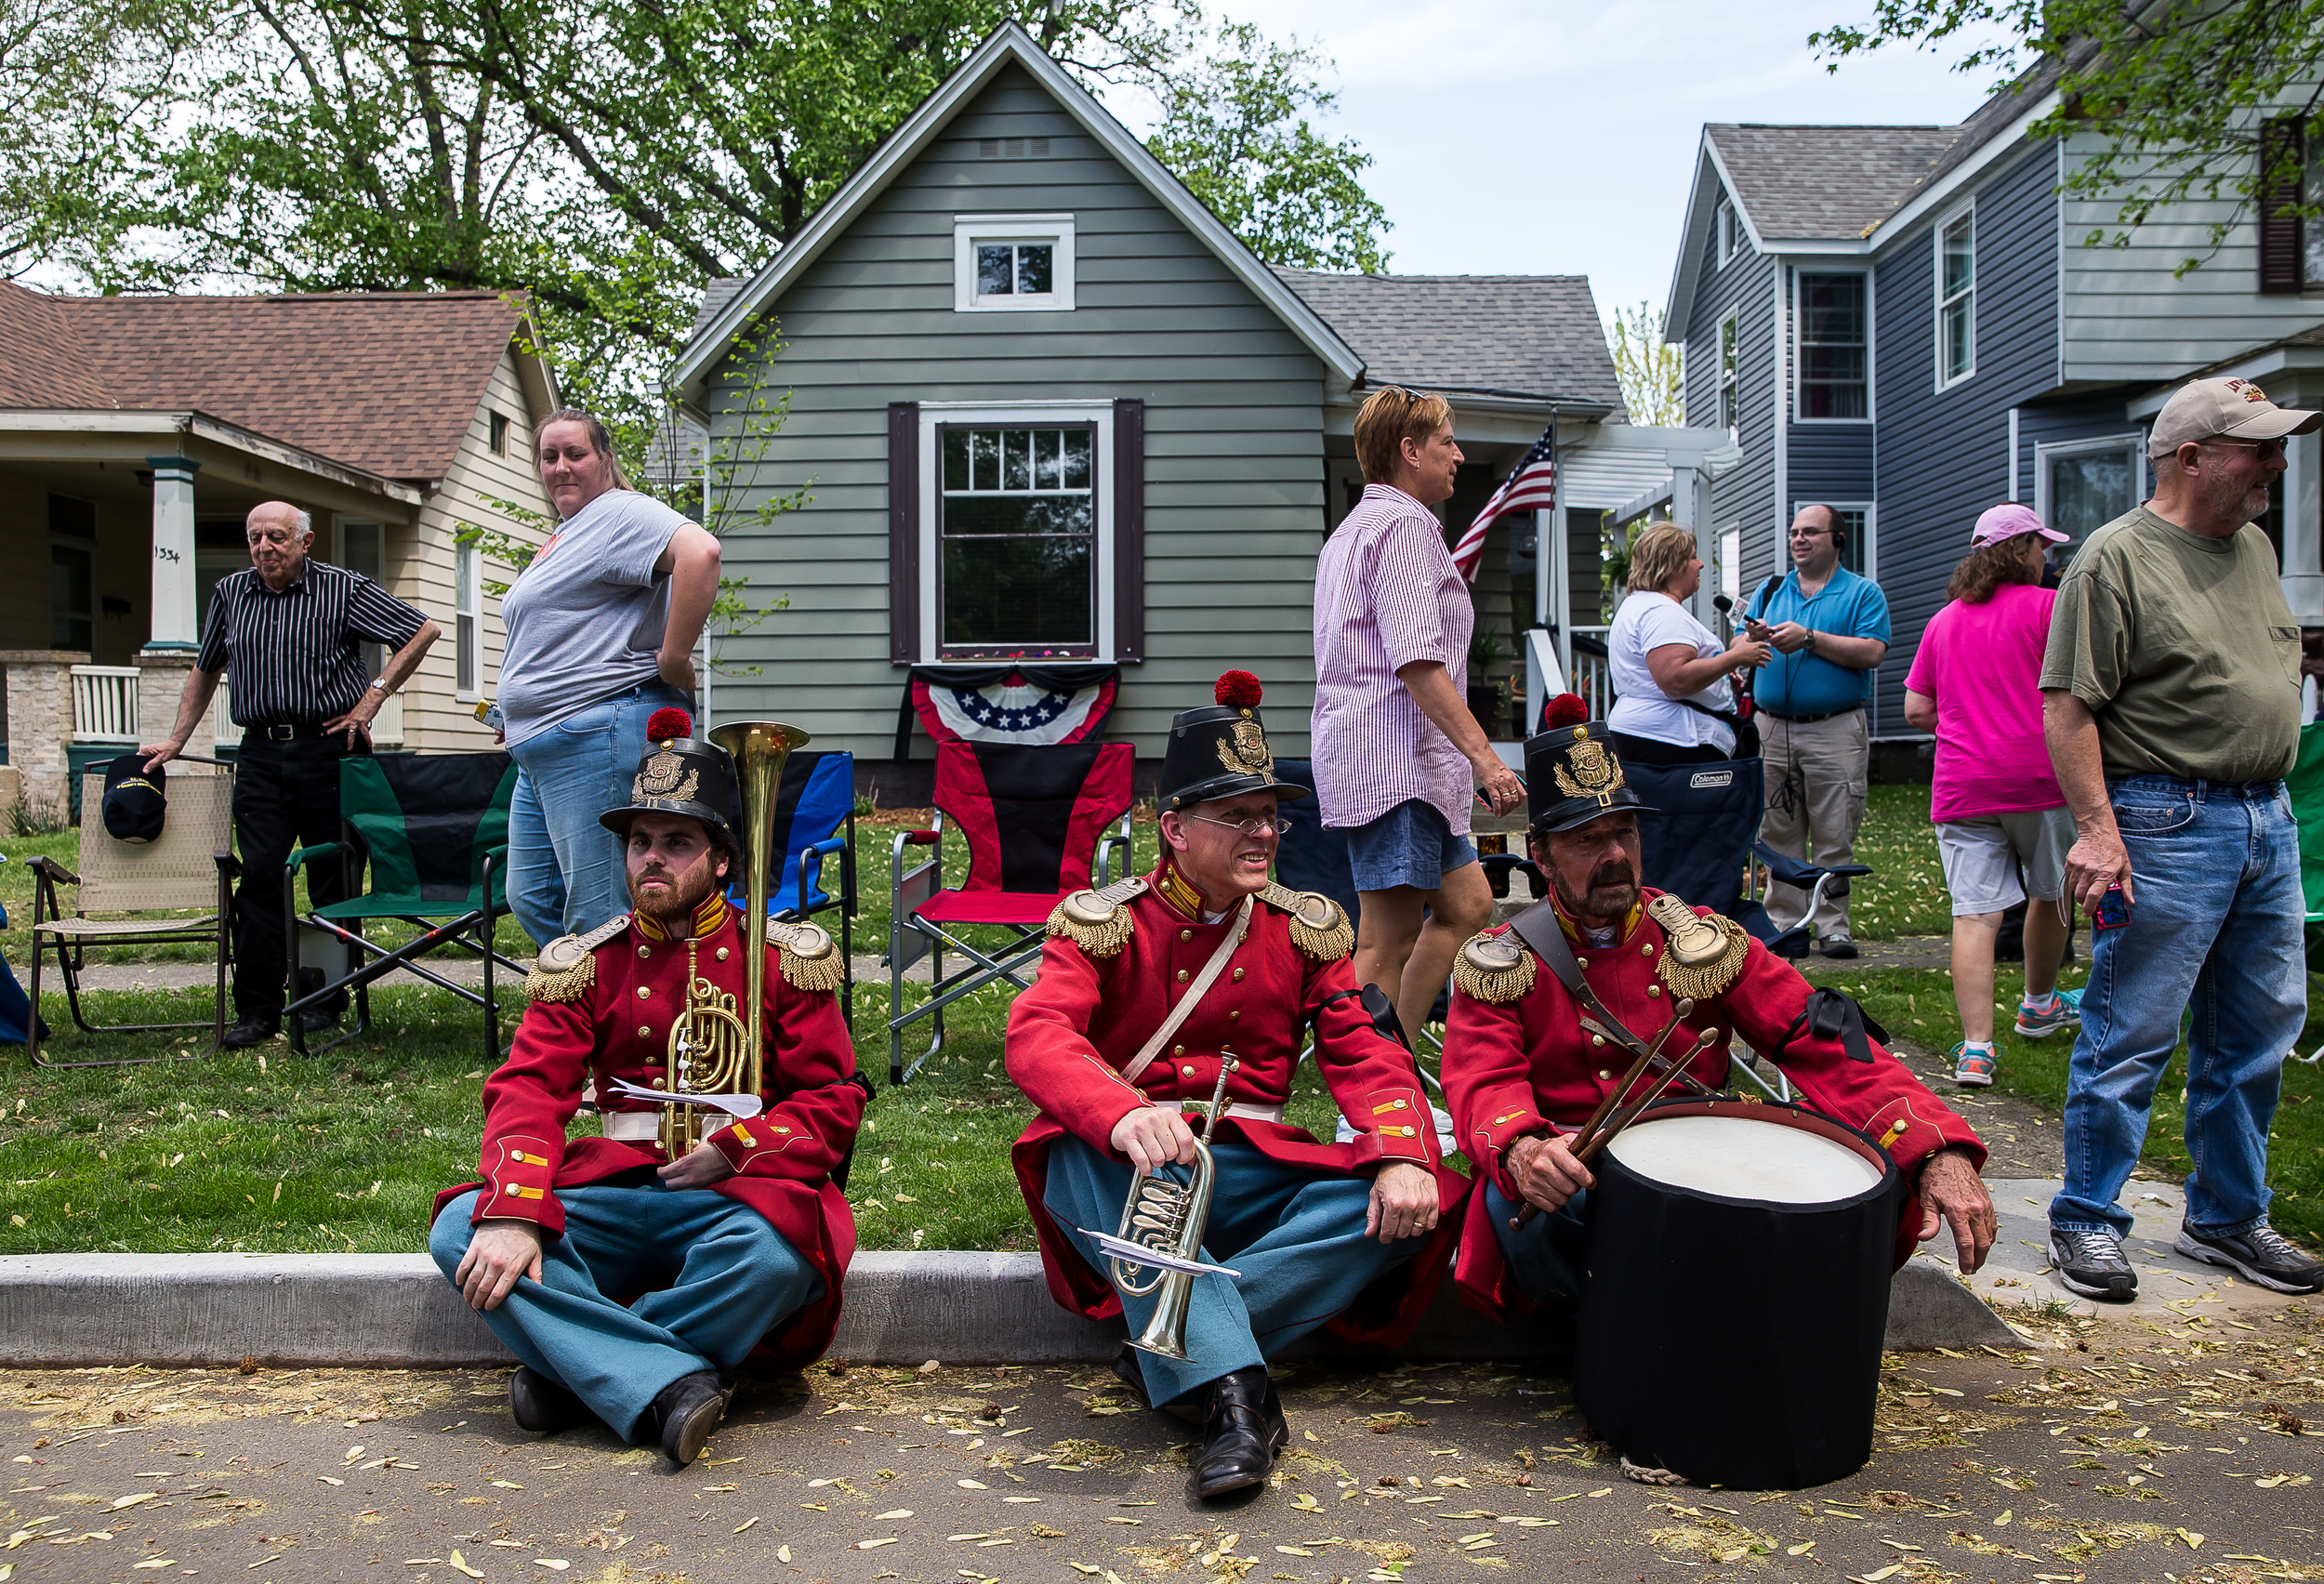 David Jaffe, left, Jeff Stockham, center, and Garman Bowers Jr., right, all members of President Lincoln's Own Band, take a break from the funeral procession during the 2015 Lincoln Funeral Re-enactment, Sunday, May 3, 2015, in Springfield, Ill. The instruments that the band members play are authentic instruments from the time period. Justin L. Fowler/The State Journal-Register